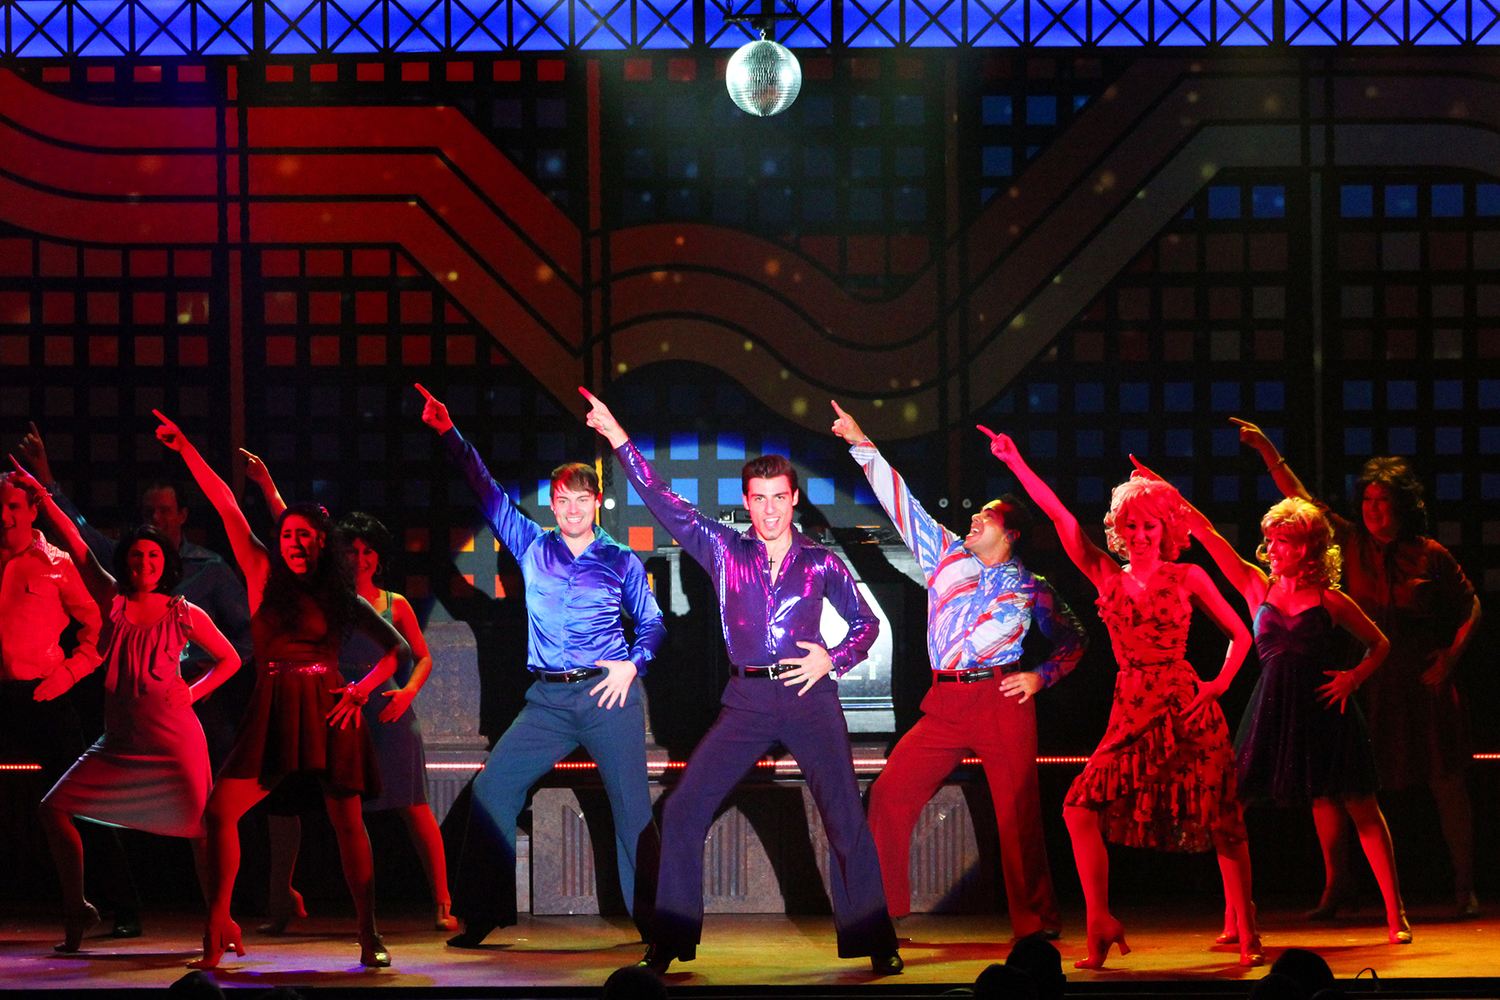 BWW Review: SATURDAY NIGHT FEVER at Broadway Palm Has Audiences Disco Dancing!